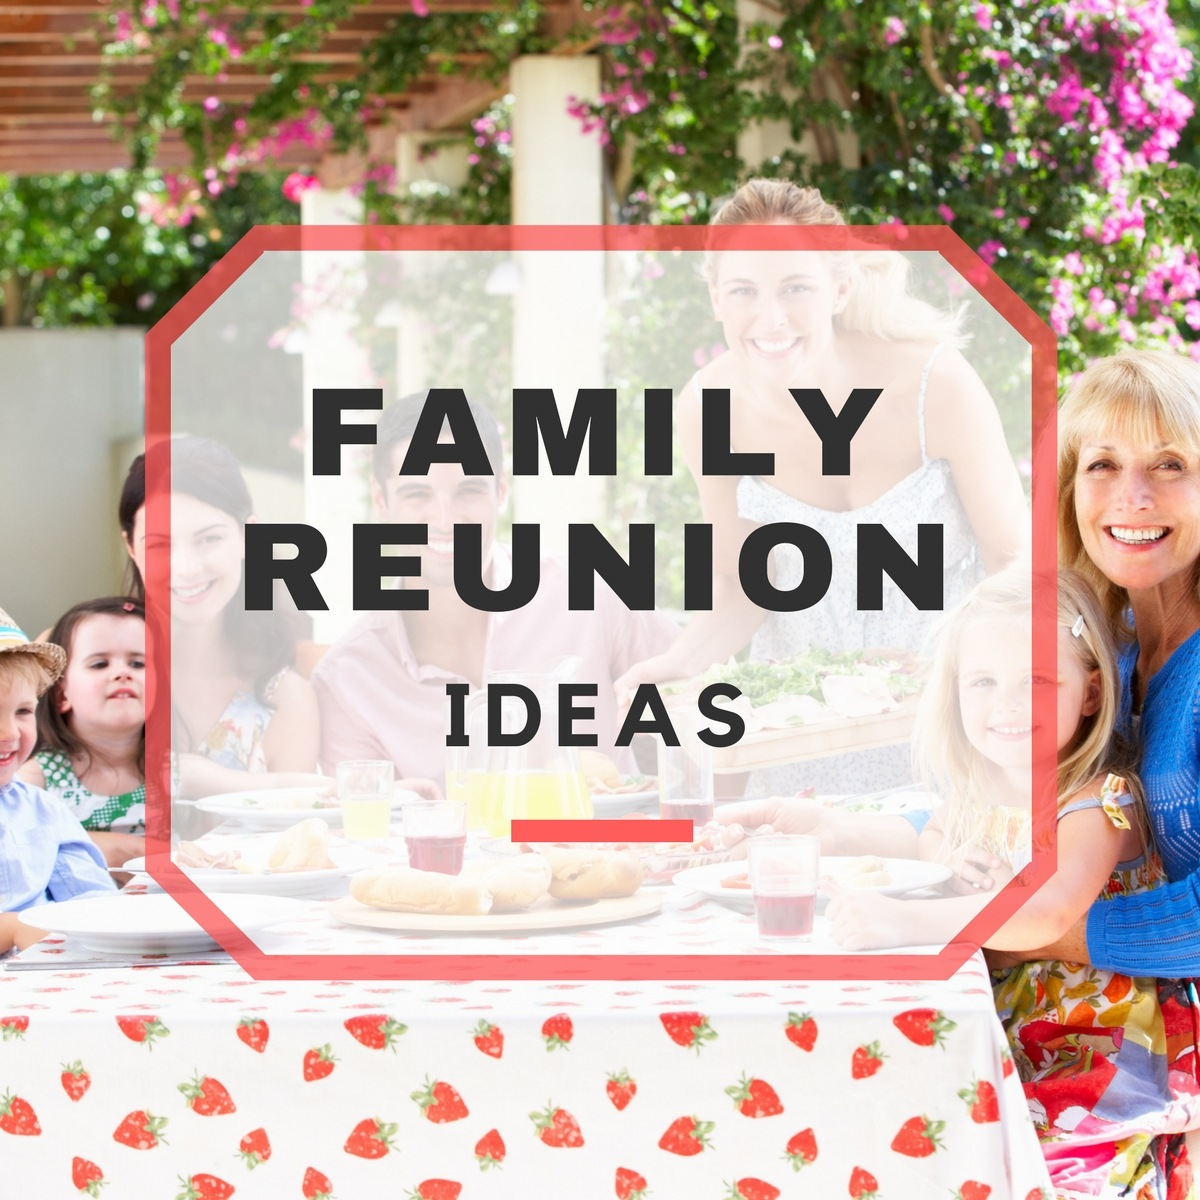 Family Reunion Ideas >> Family Reunion Ideas For The Perfect Family Reunion